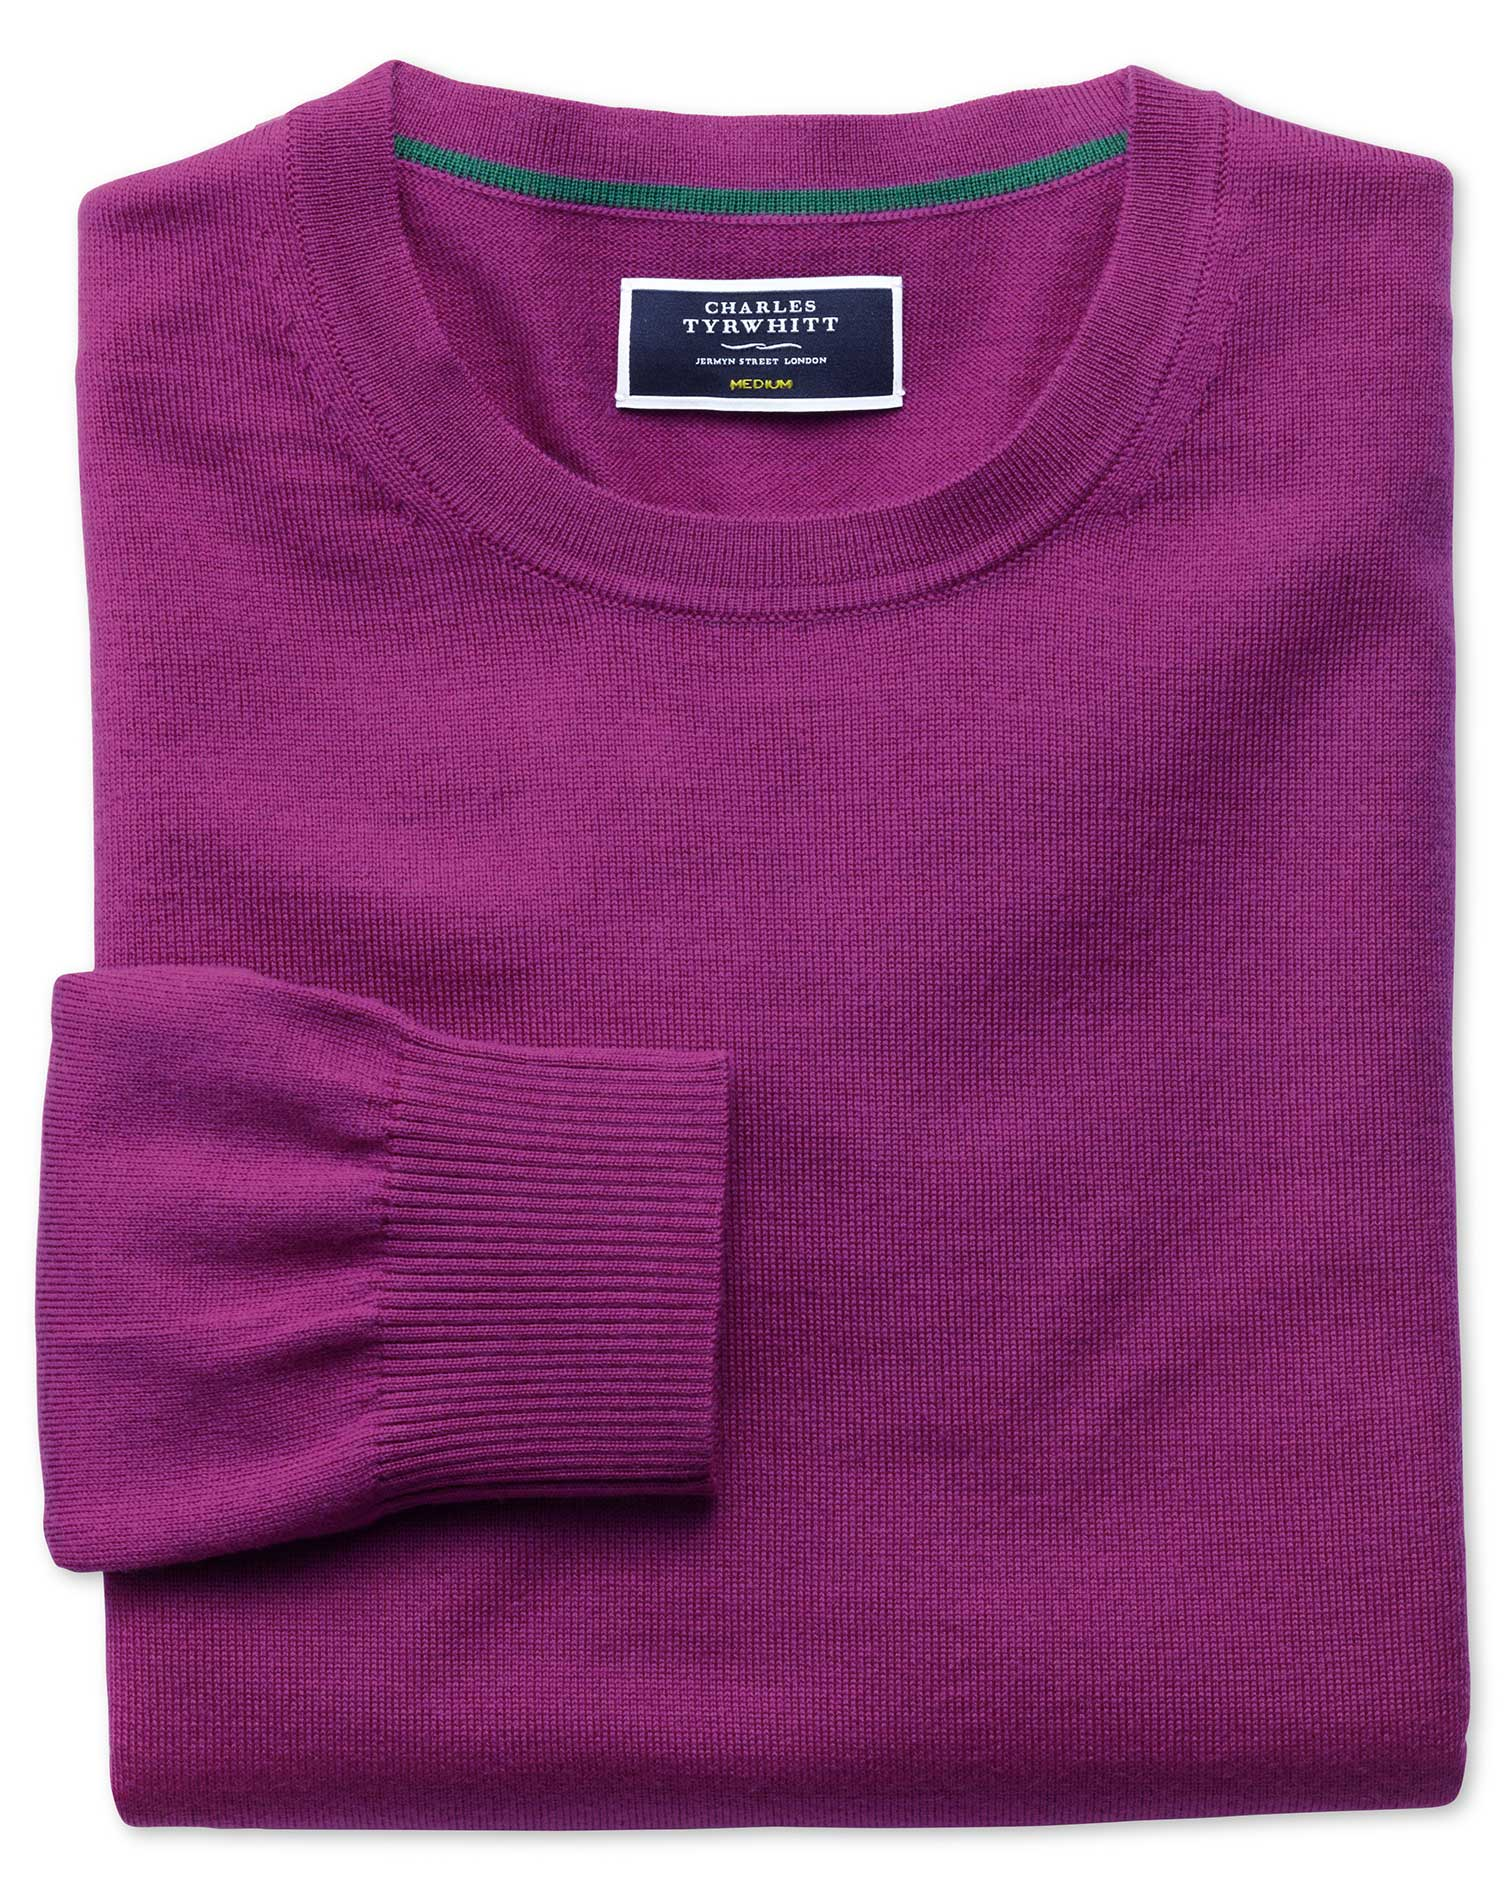 Berry Merino Wool Crew Neck Jumper Size Large by Charles Tyrwhitt